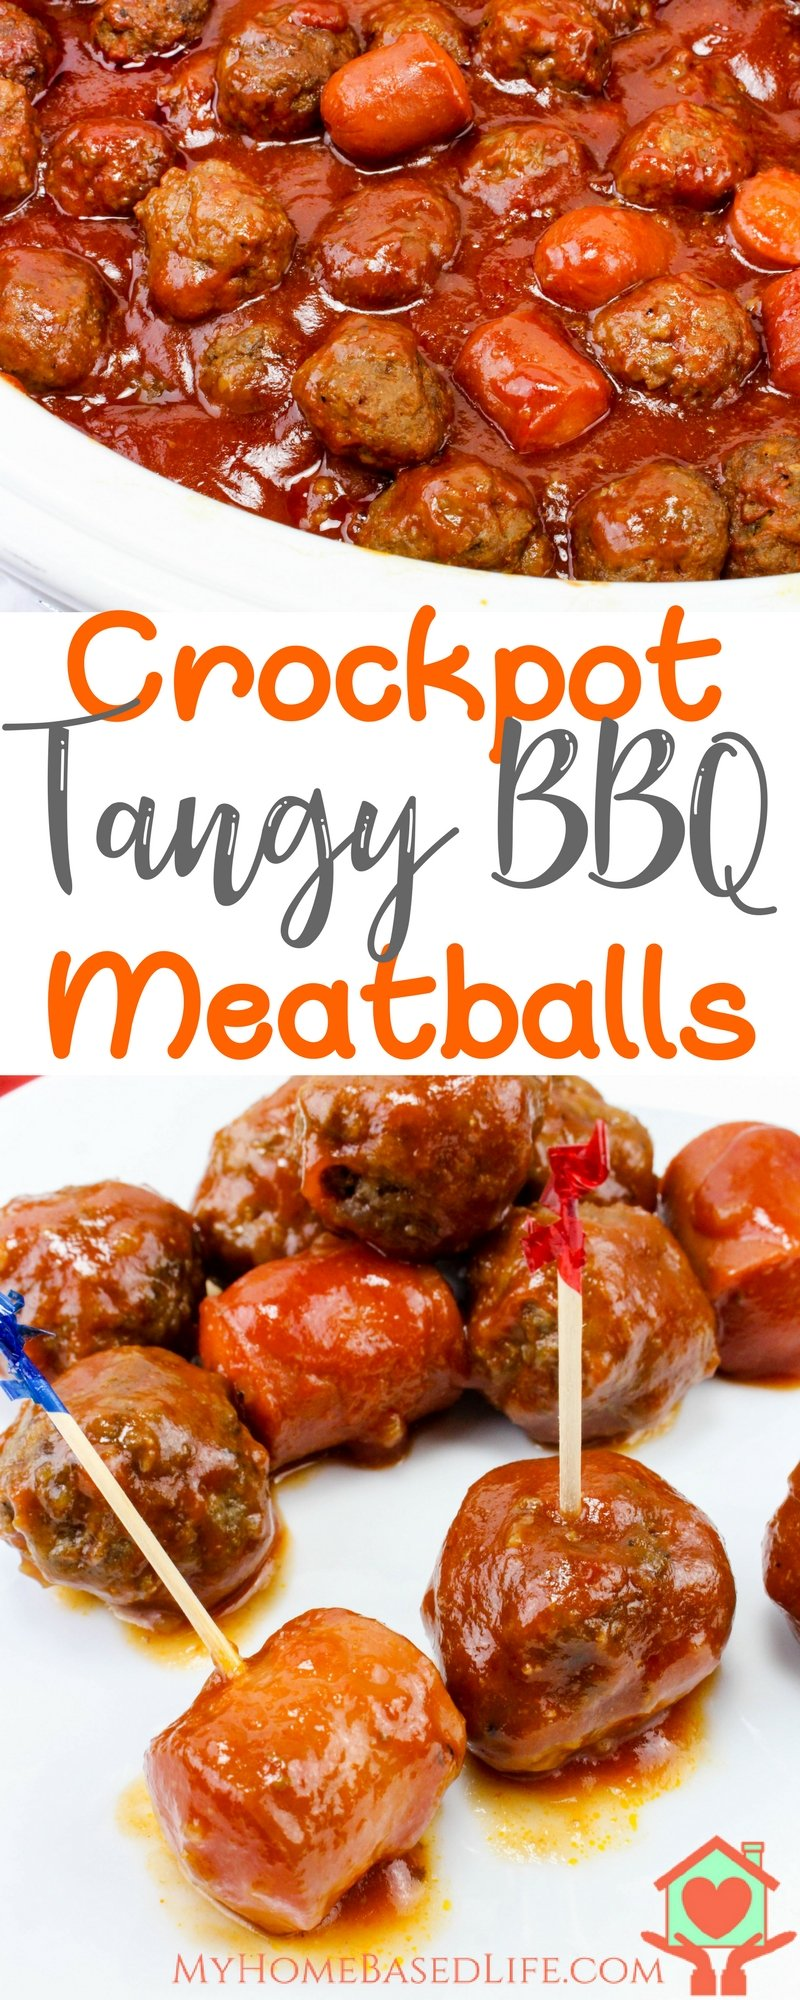 Make dinner easy with this recipe for Crockpot Tangy BBQ Meatballs! They're delicious by themselves, or make awesome sub sandwiches! |Crockpot Tangy BBQ Meatballs | Crockpot Recipe | Crockpot Meatballs | BBQ Meatball Recipe | Meatball Recipe | Easy Meatball Recipe | #meatballrecipe #crockpotmeals